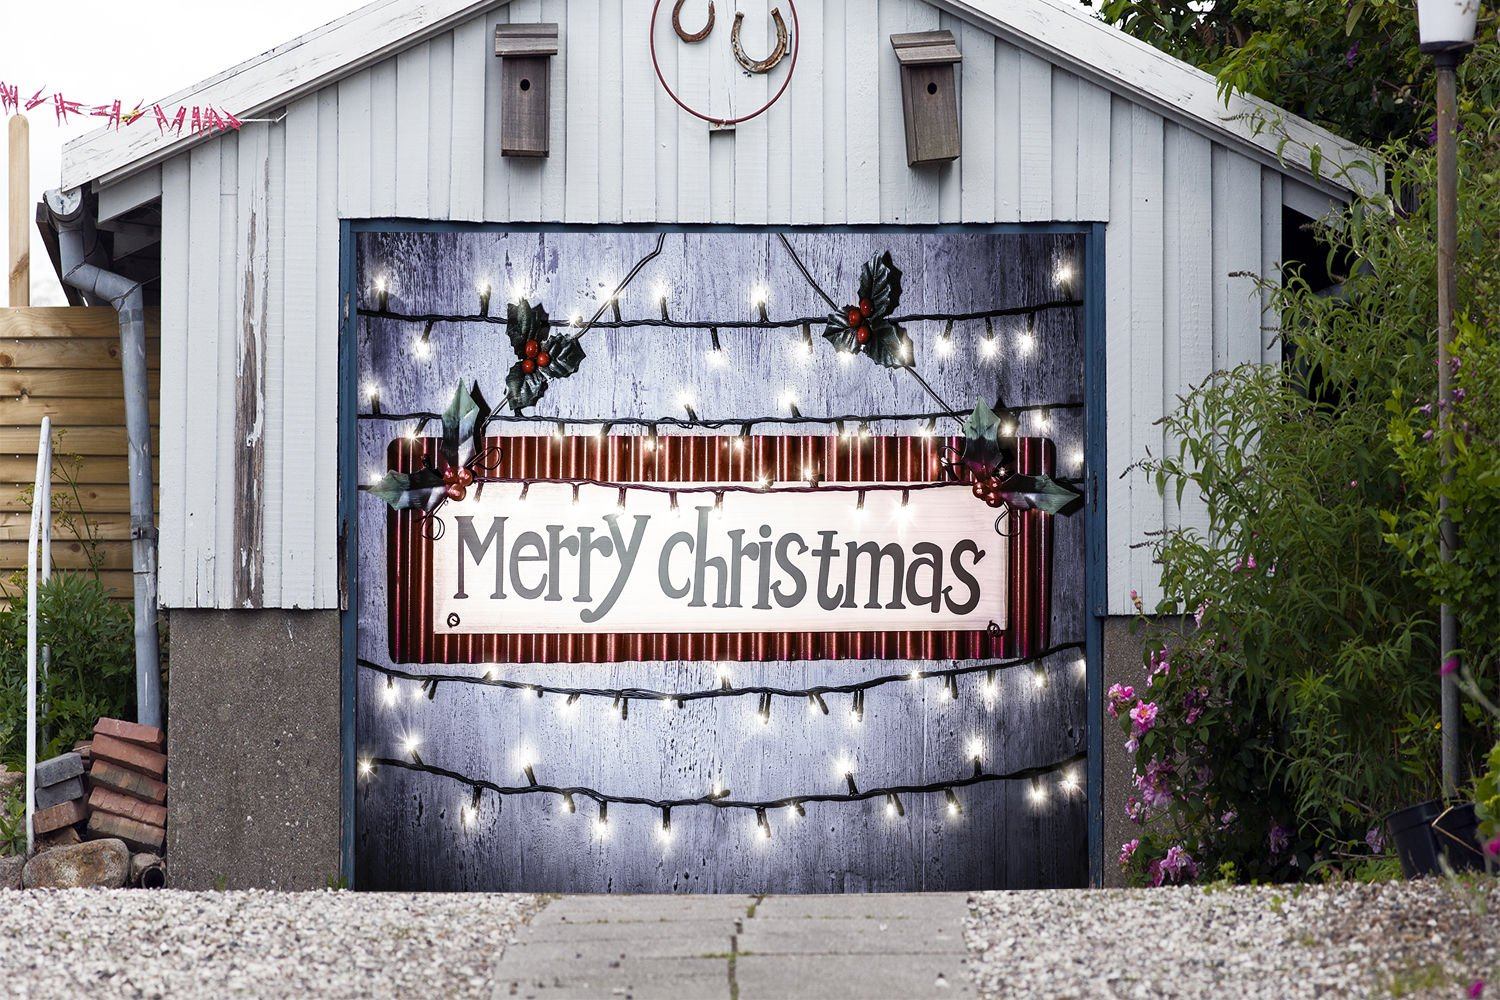 Merry Christmas for SINGLE CAR GARAGE DOOR MURALS Covers Outdoor Decor Billboard Full Color 3D Effect Print Decorations of House Garage Holiday Banner Door Cover Size 83 x 96 inches DAV119 by WallTattooHome